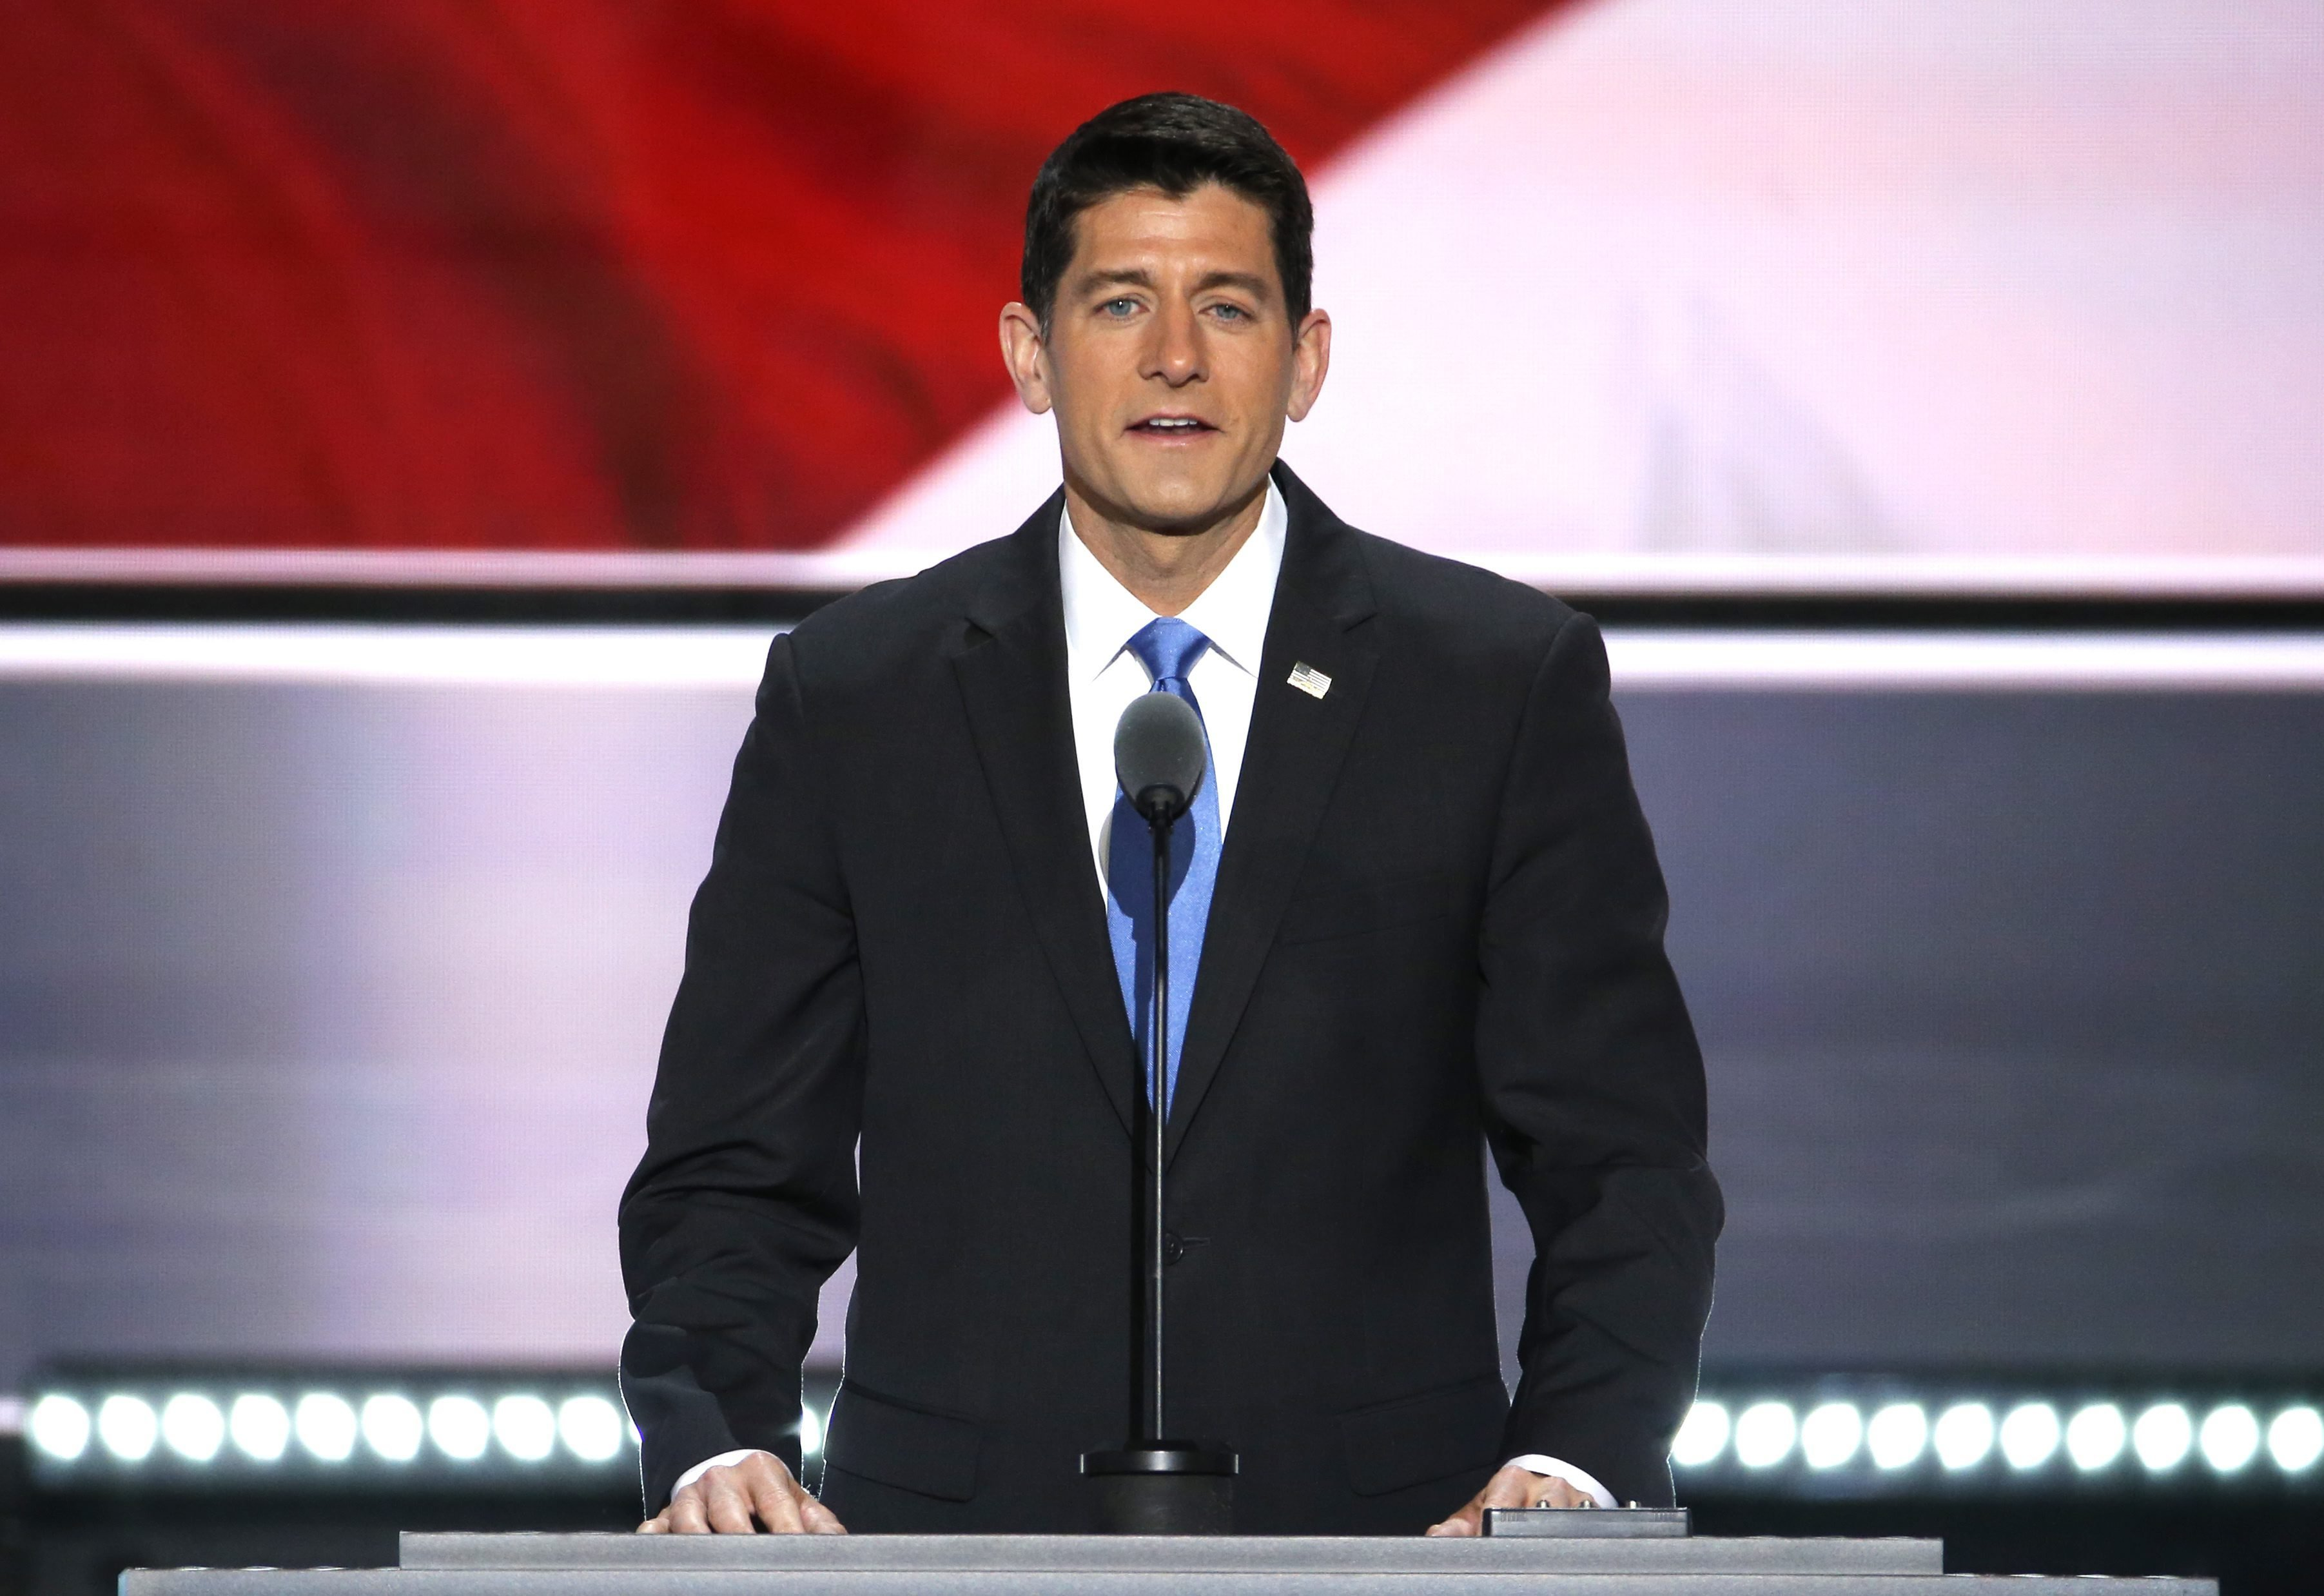 Speaker of the House and Permanent Chair of the Republican National Convention Paul Ryan delivers remarks on stage at the Quicken Loans Arena on the second day of the 2016 Republican National Convention in Cleveland, July 19, 2016.